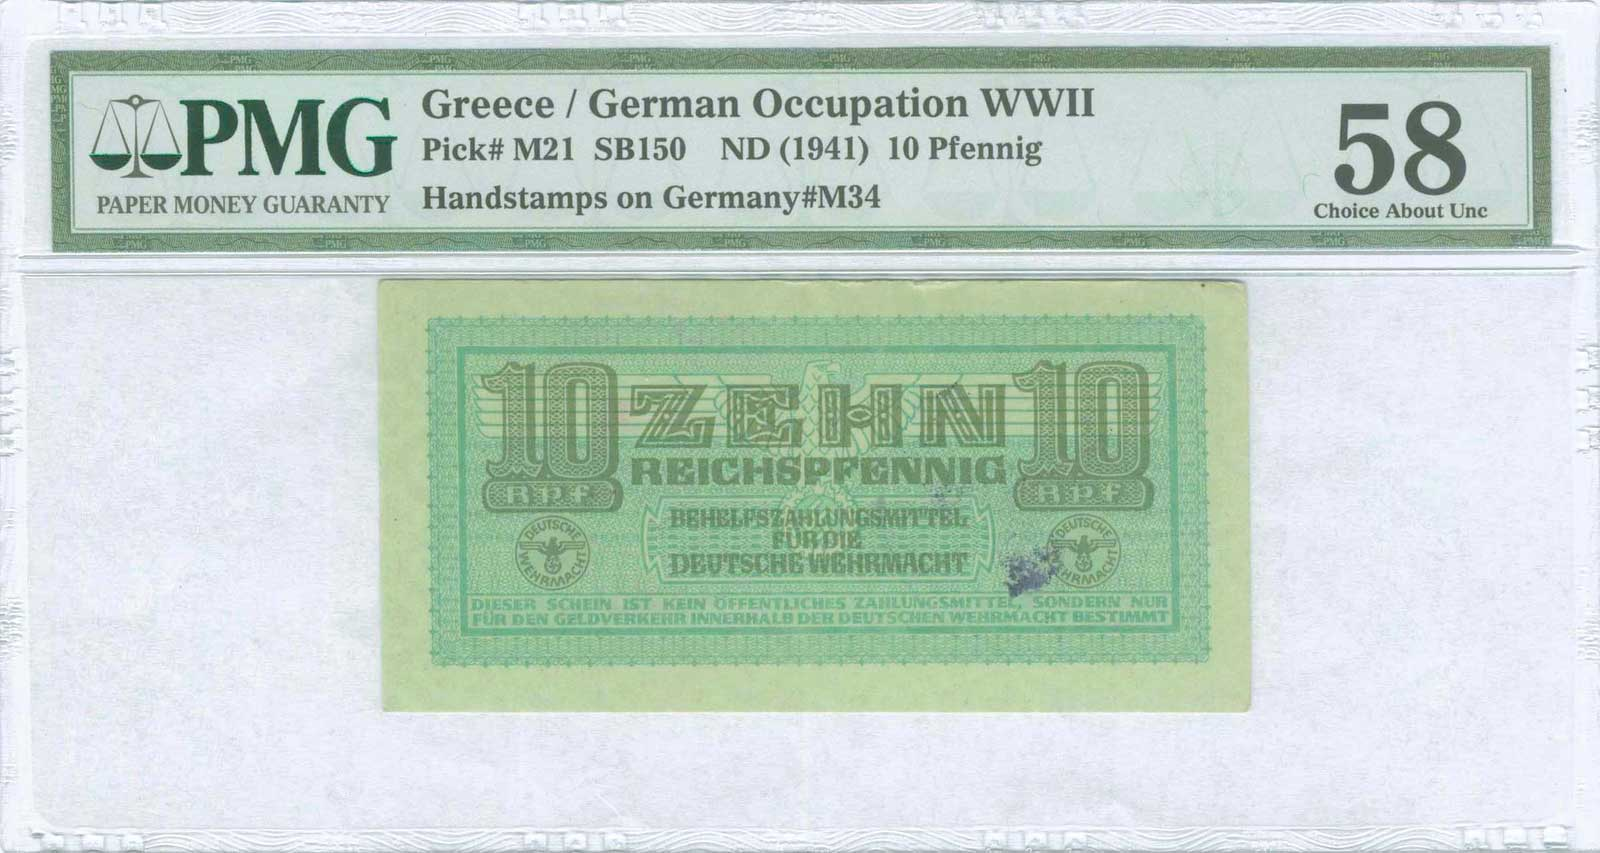 Lot 9403 - GREECE-  PAPER MONEY - BANKNOTES german occupation wwii -  A. Karamitsos Public & LIVE Bid Auction 610 Coins, Medals & Banknotes